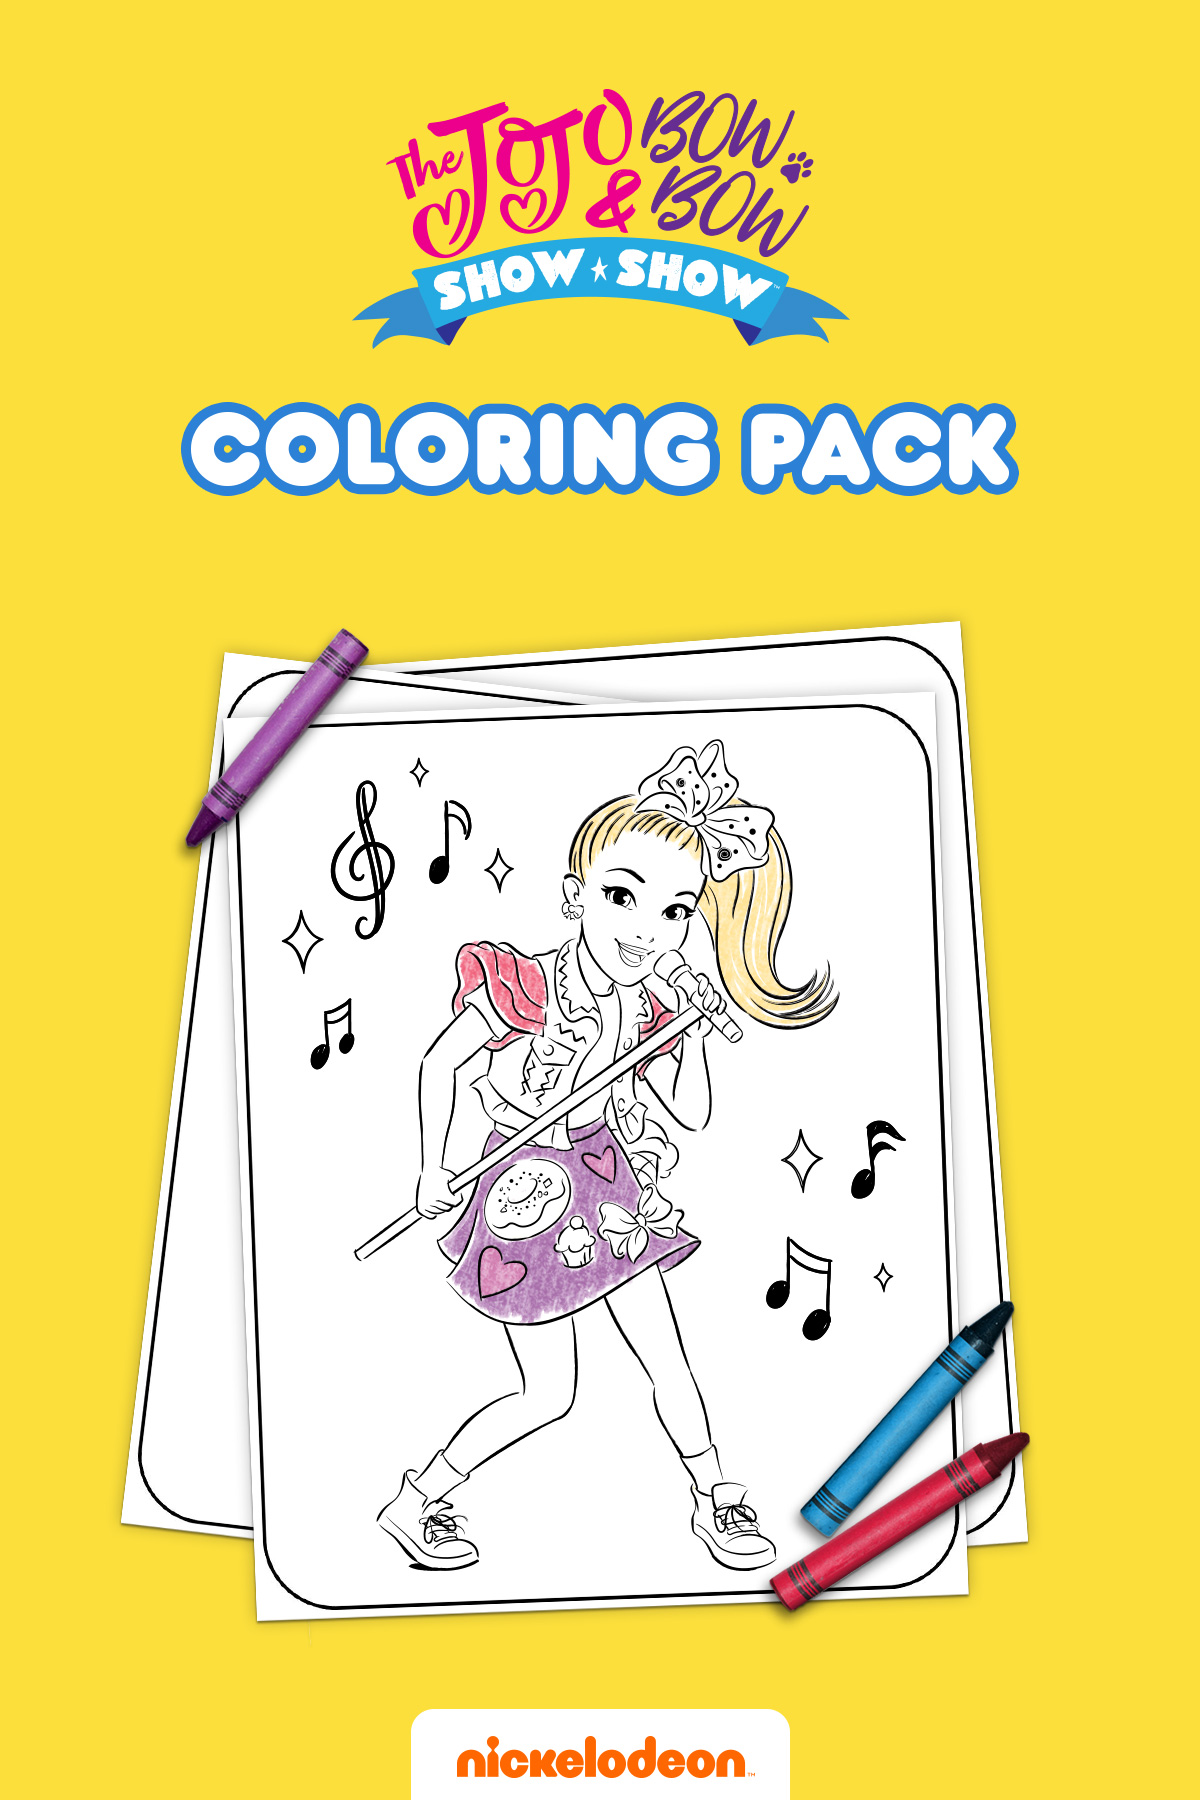 JoJo and BowBow Show Show Coloring Pack